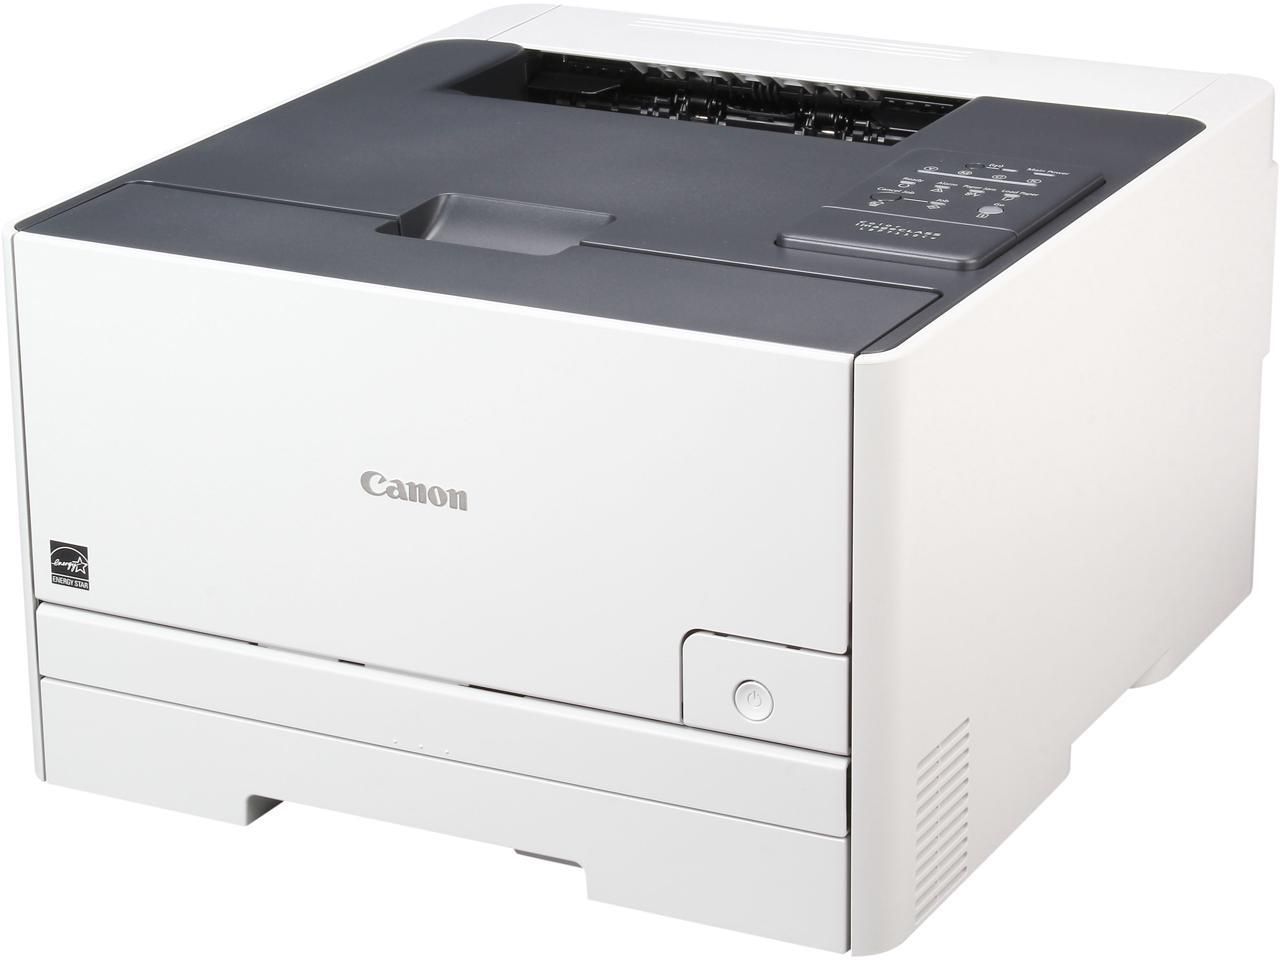 CANON IMAGECLASS LBP7110CW DRIVERS FOR WINDOWS MAC